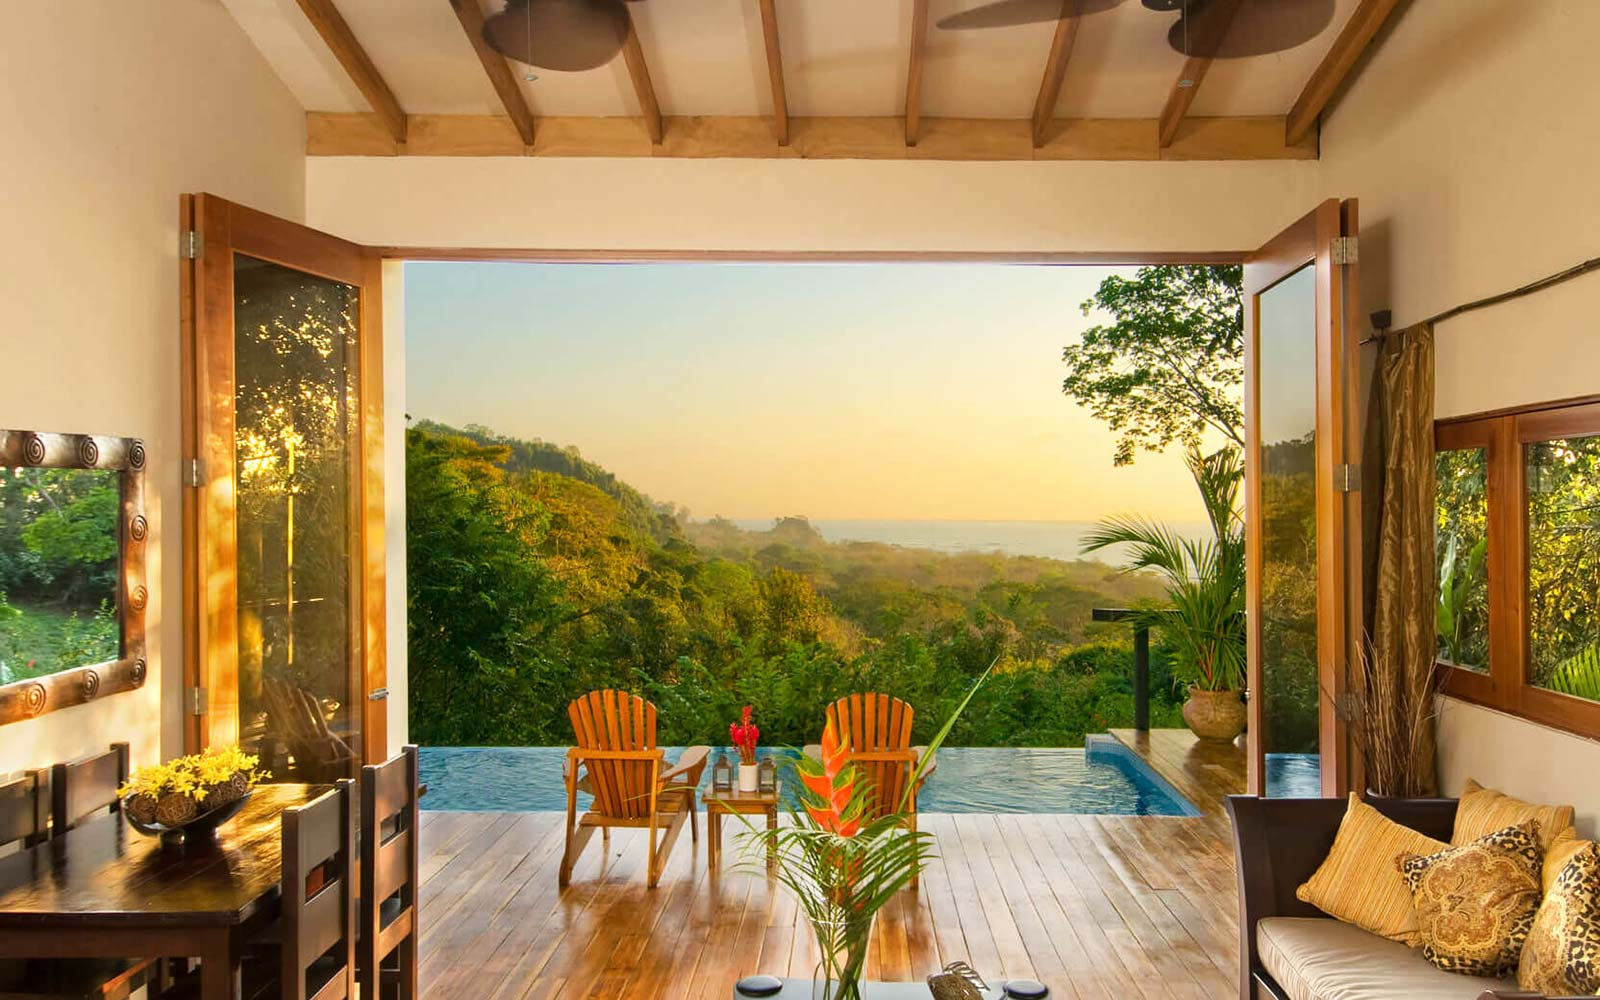 Save 30% off a three-night stay at a villa resort in Costa Rica